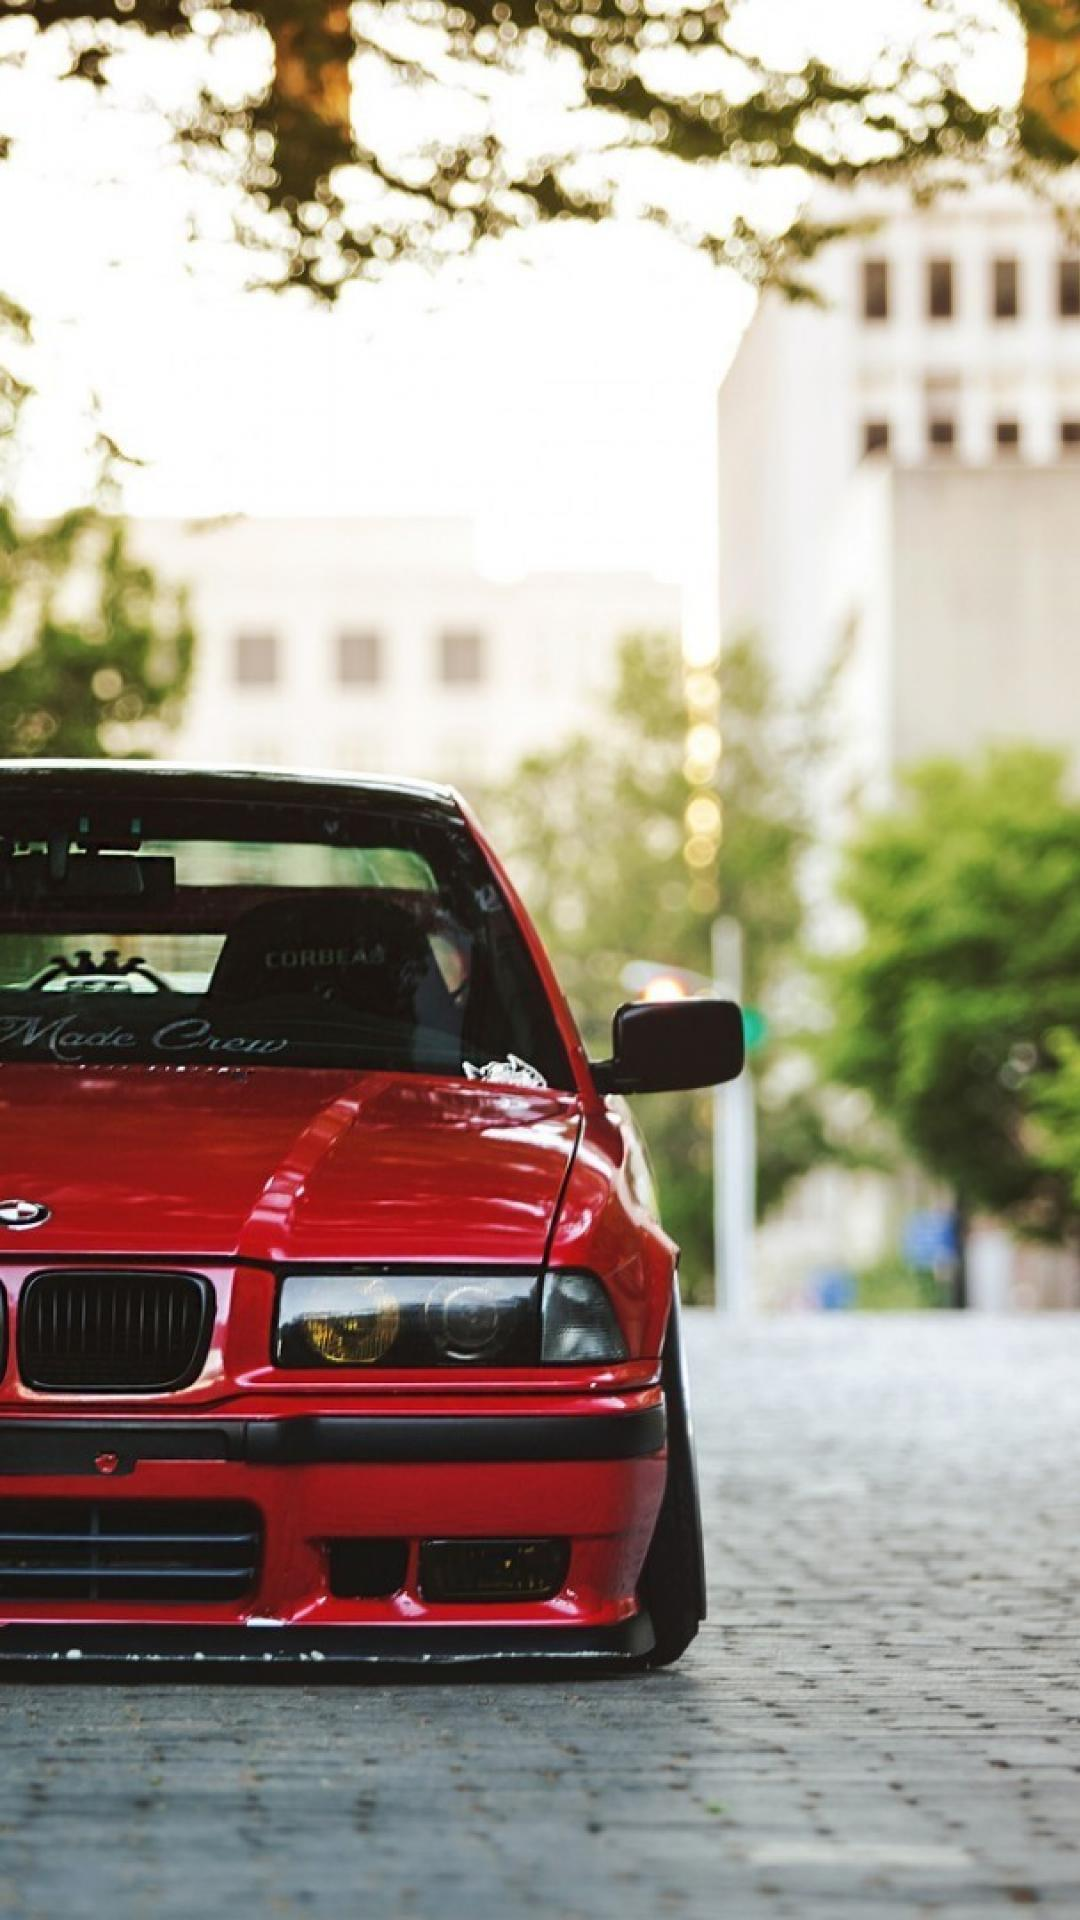 Bmw E36 Hd Wallpapers Wallpaper Cave